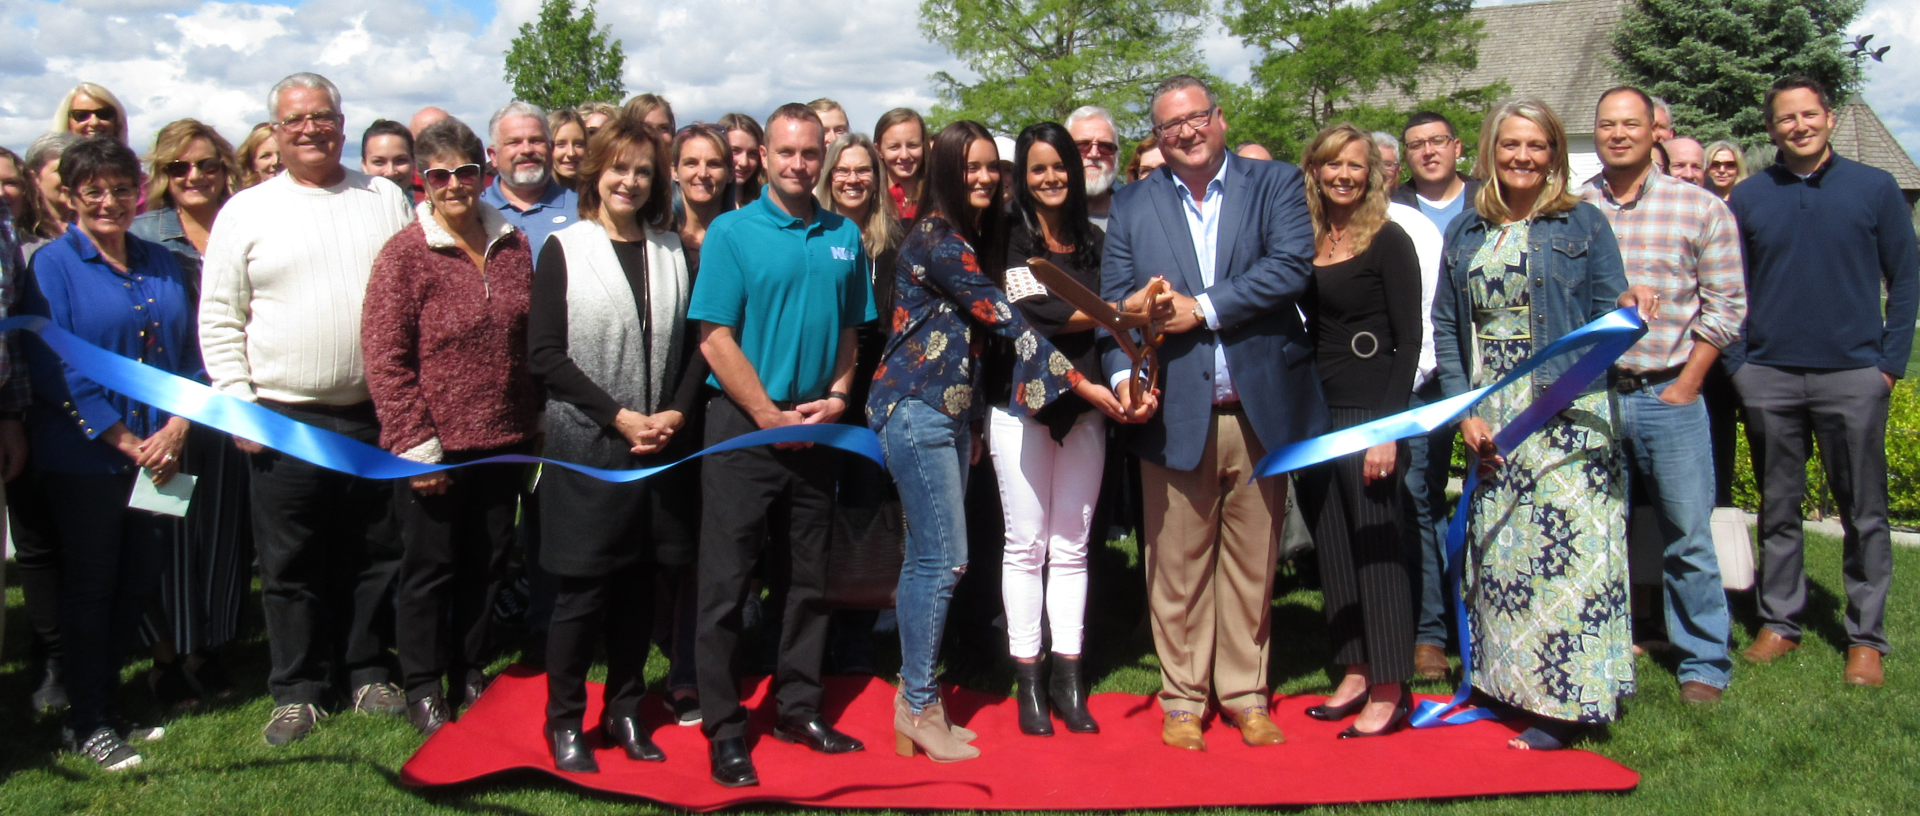 Ambassadors attending a ribbon cutting